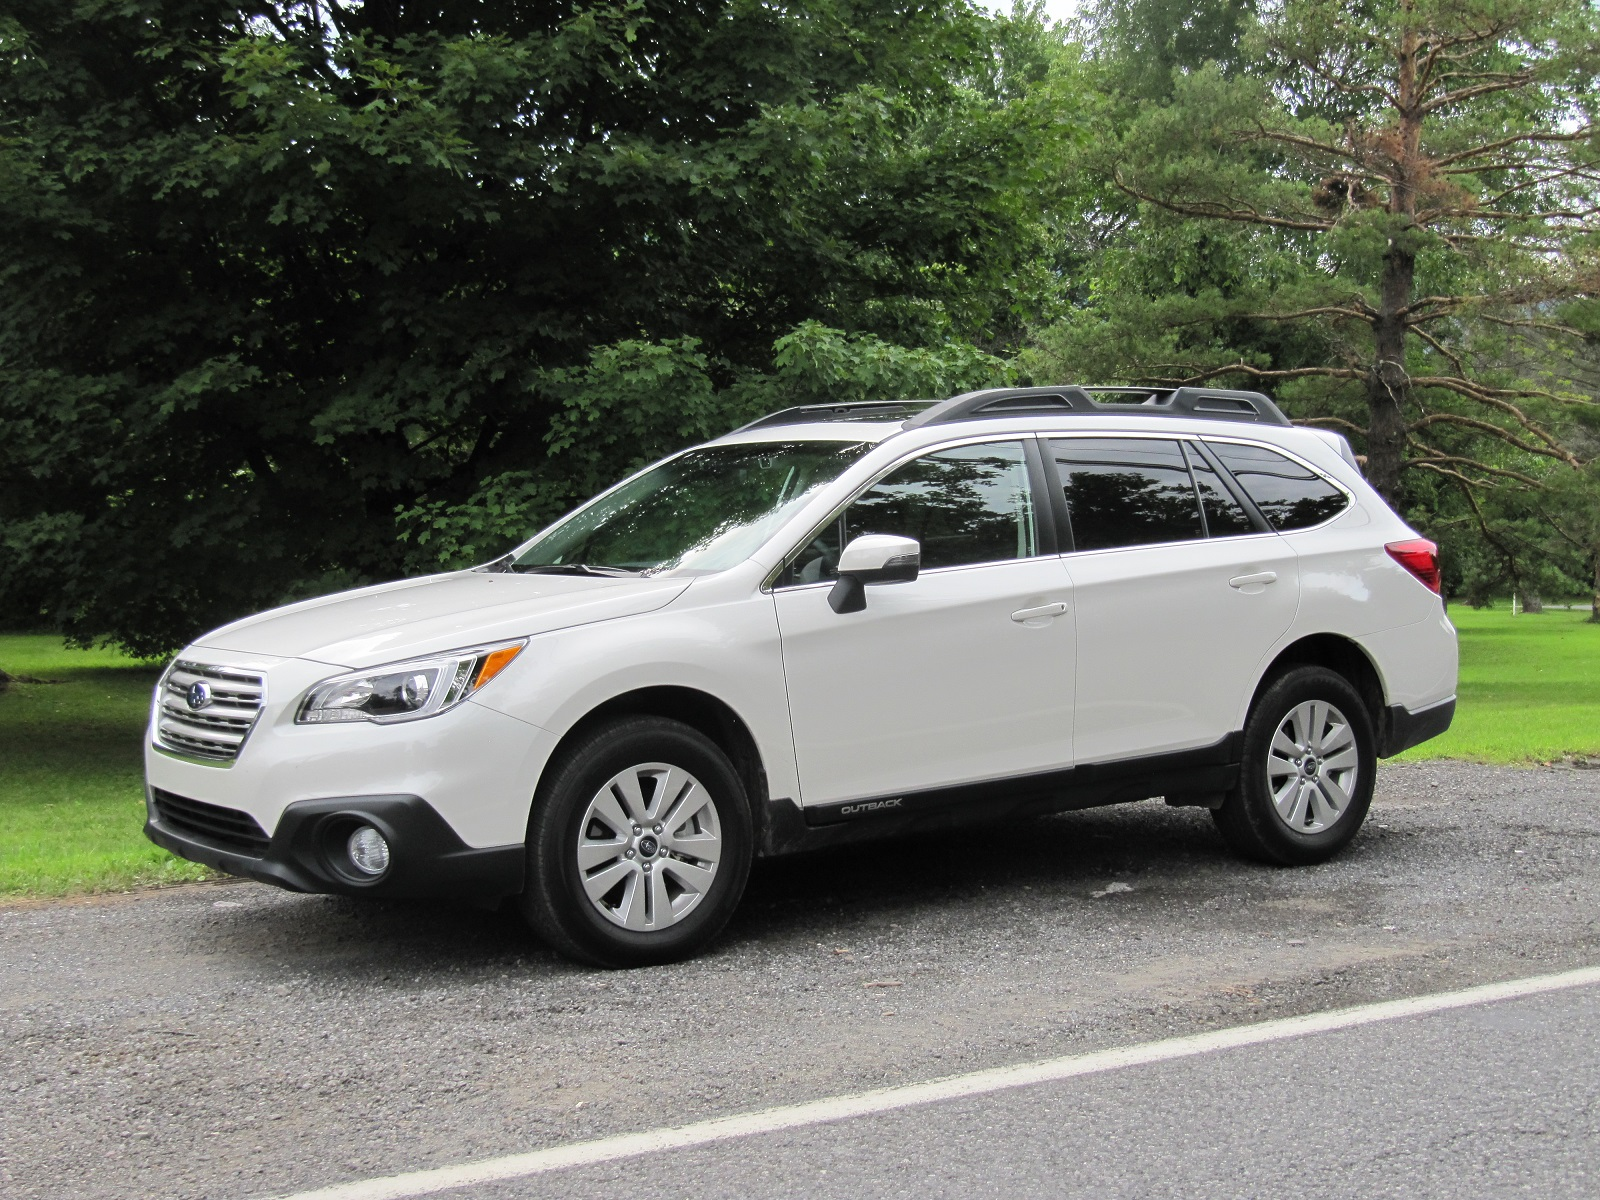 24 Photos of the 2015 Subaru Outback Review, specs, price